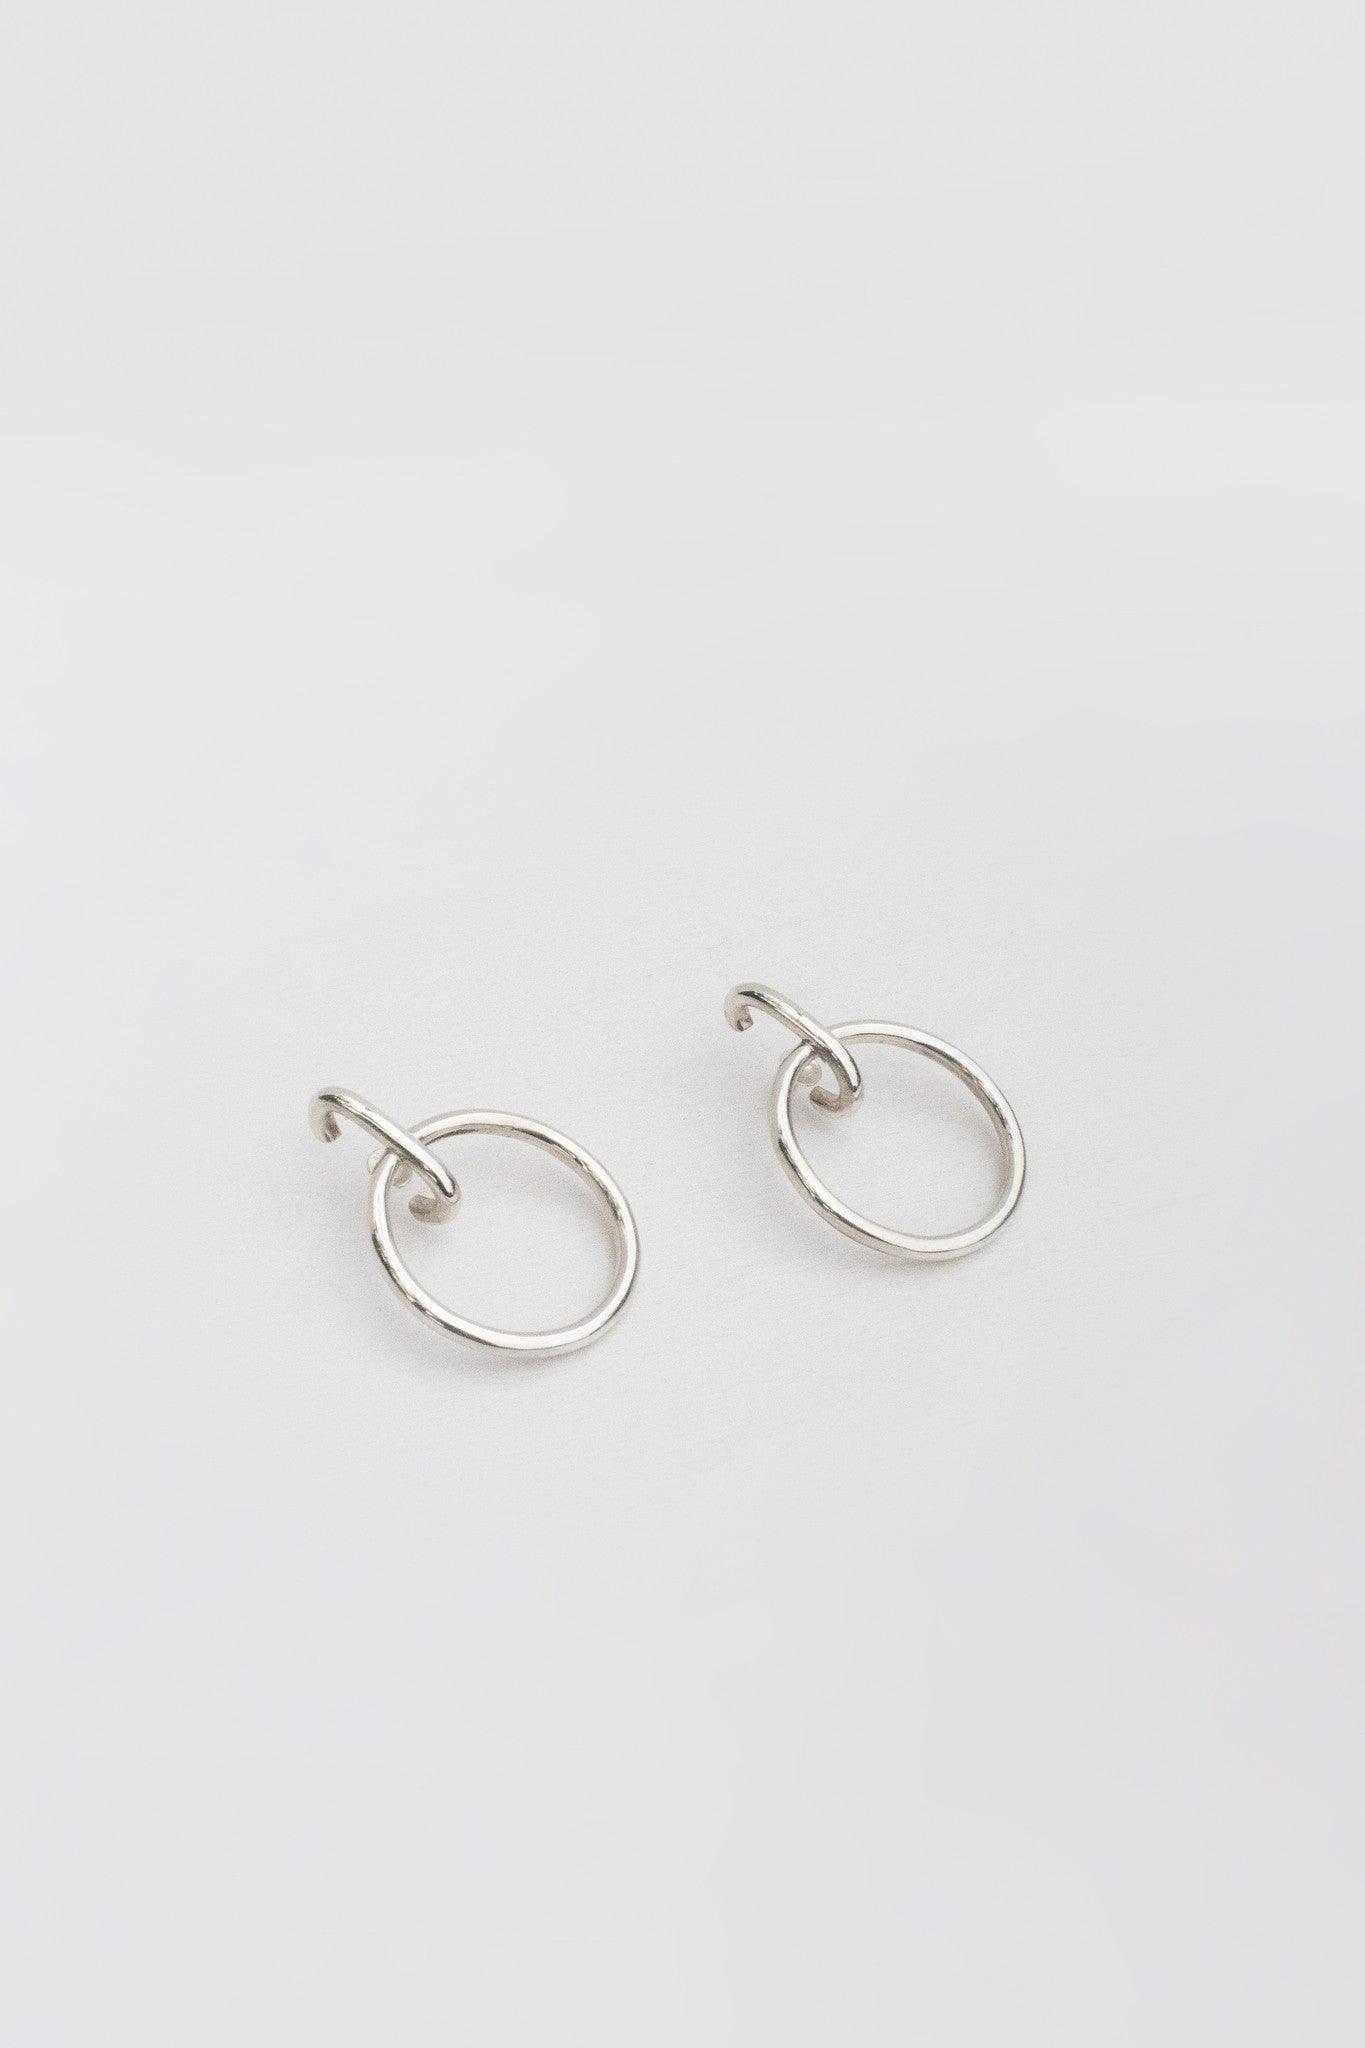 ISABEL HOOP EARRINGS